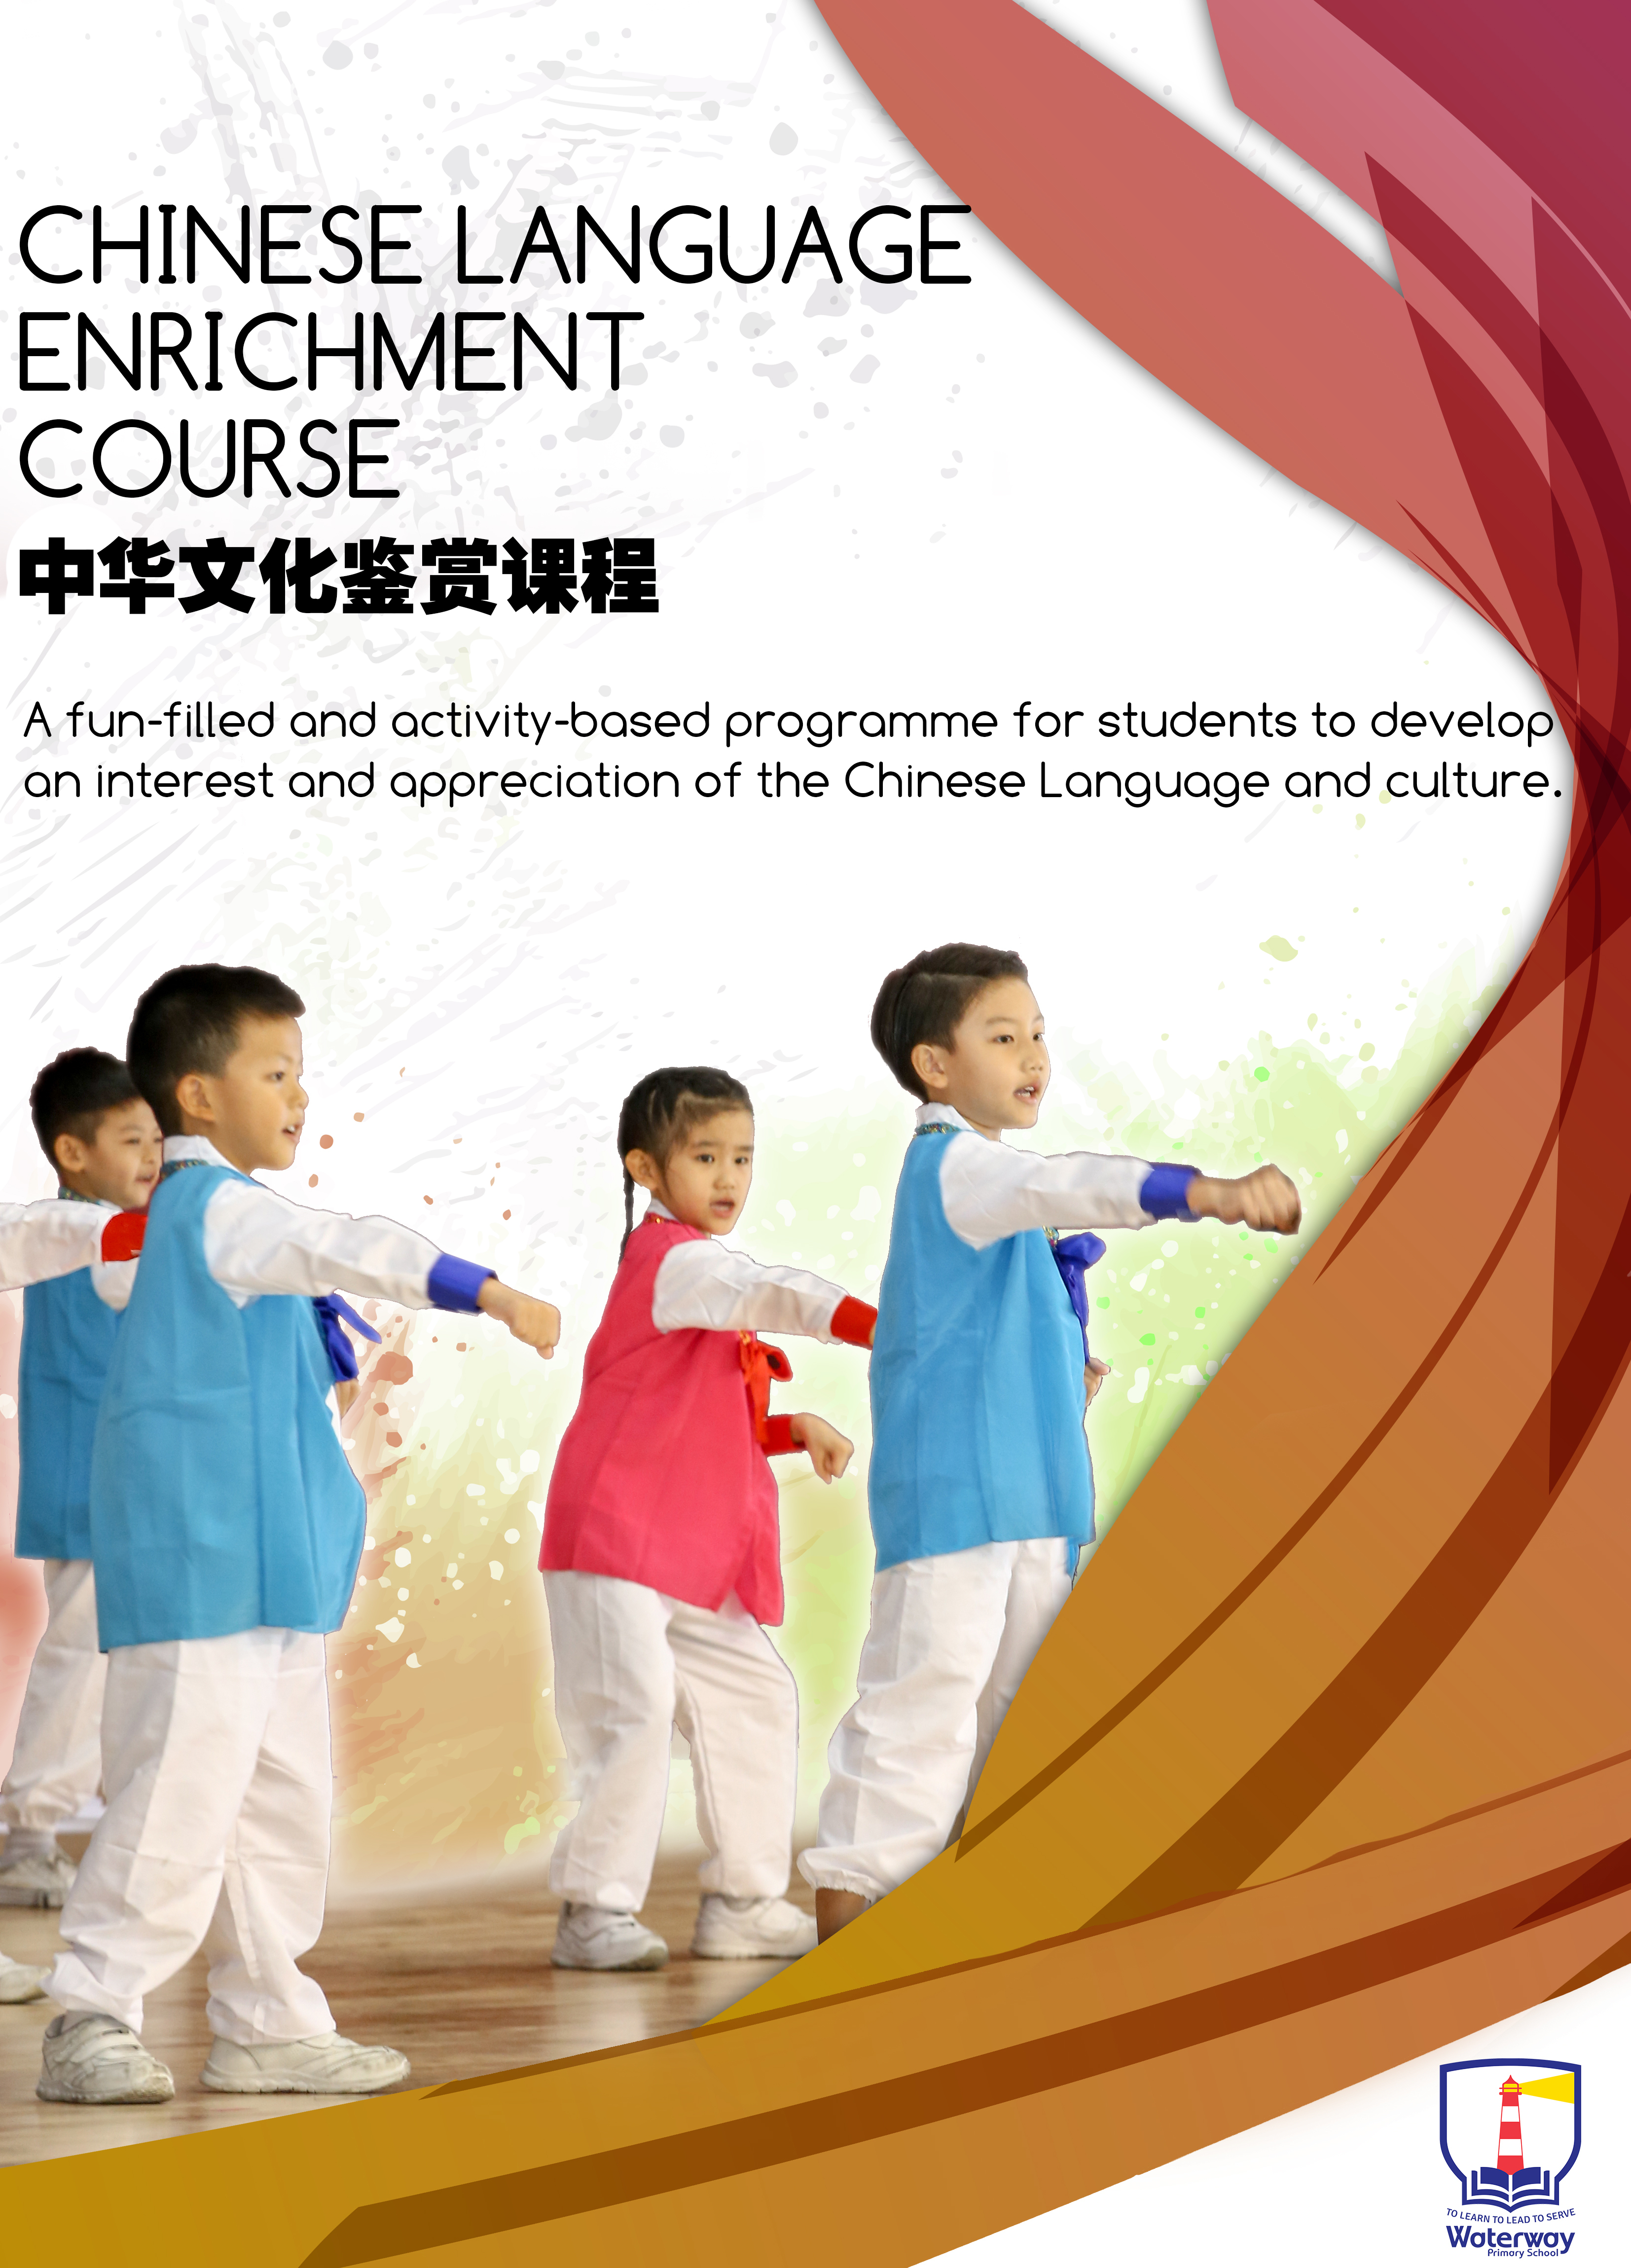 Link to Chinese Language Enrichment Course programme